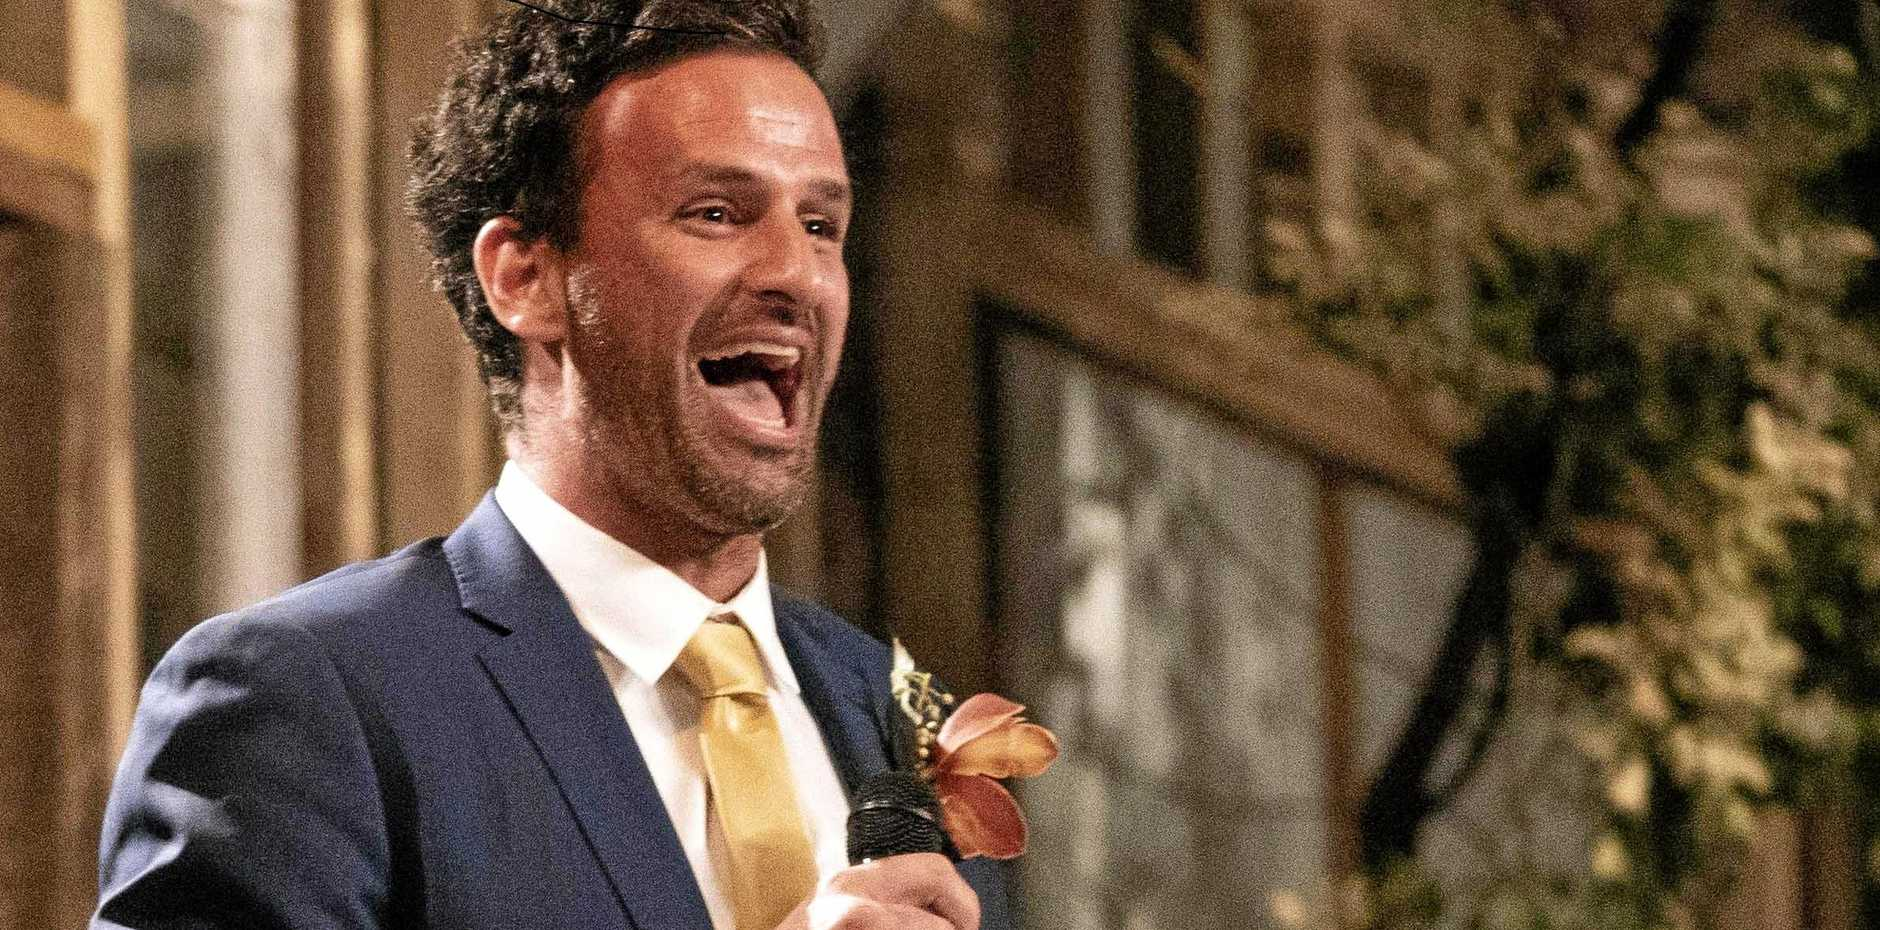 Gympie's Mick Gould during his wedding reception in a scene from Married at First Sight.